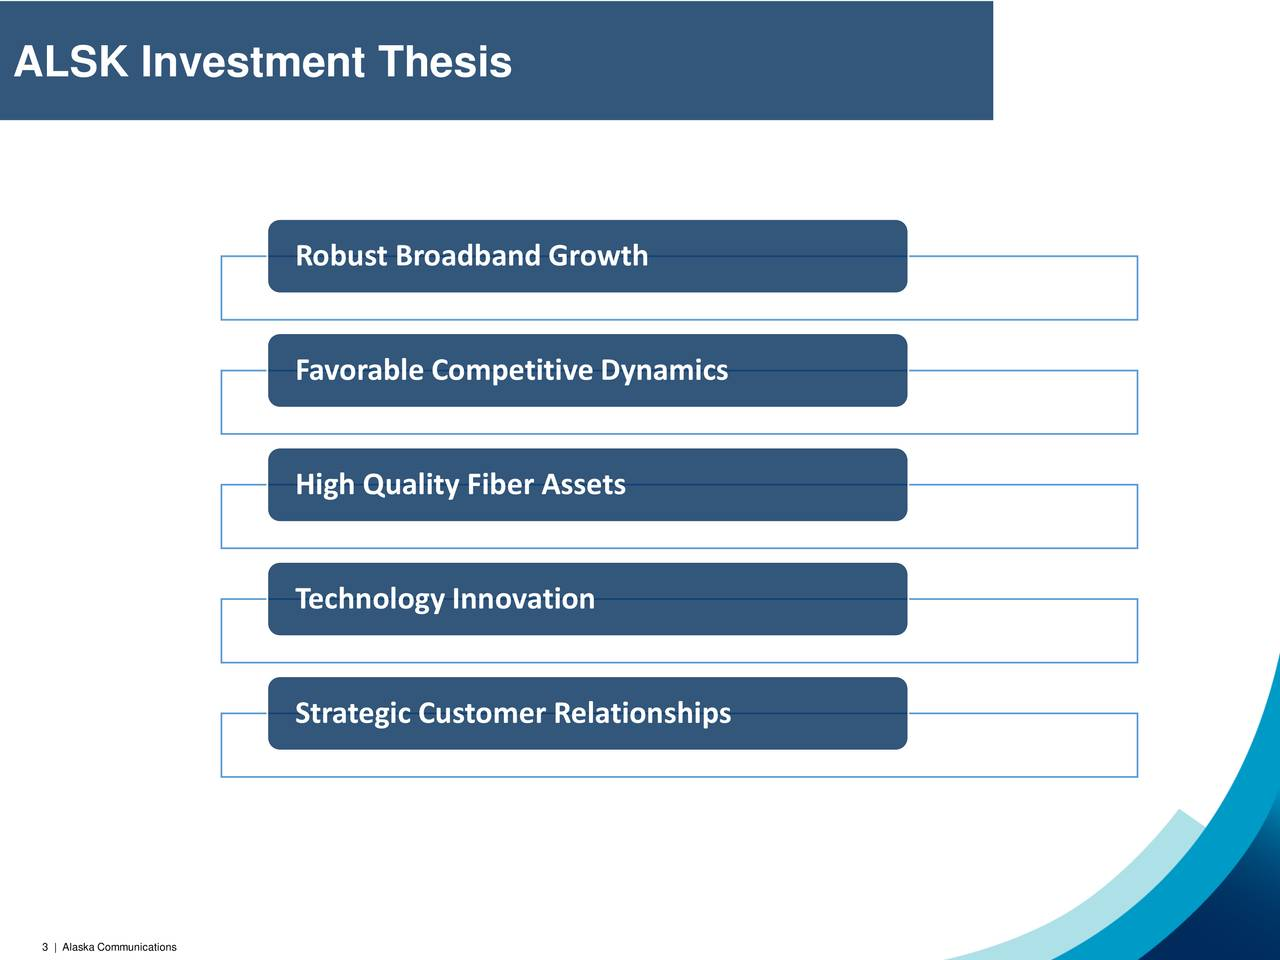 Robust Broadband Growth Favorable Competitive Dynamics High Quality Fiber Assets Technology Innovation Strategic Customer Relationships